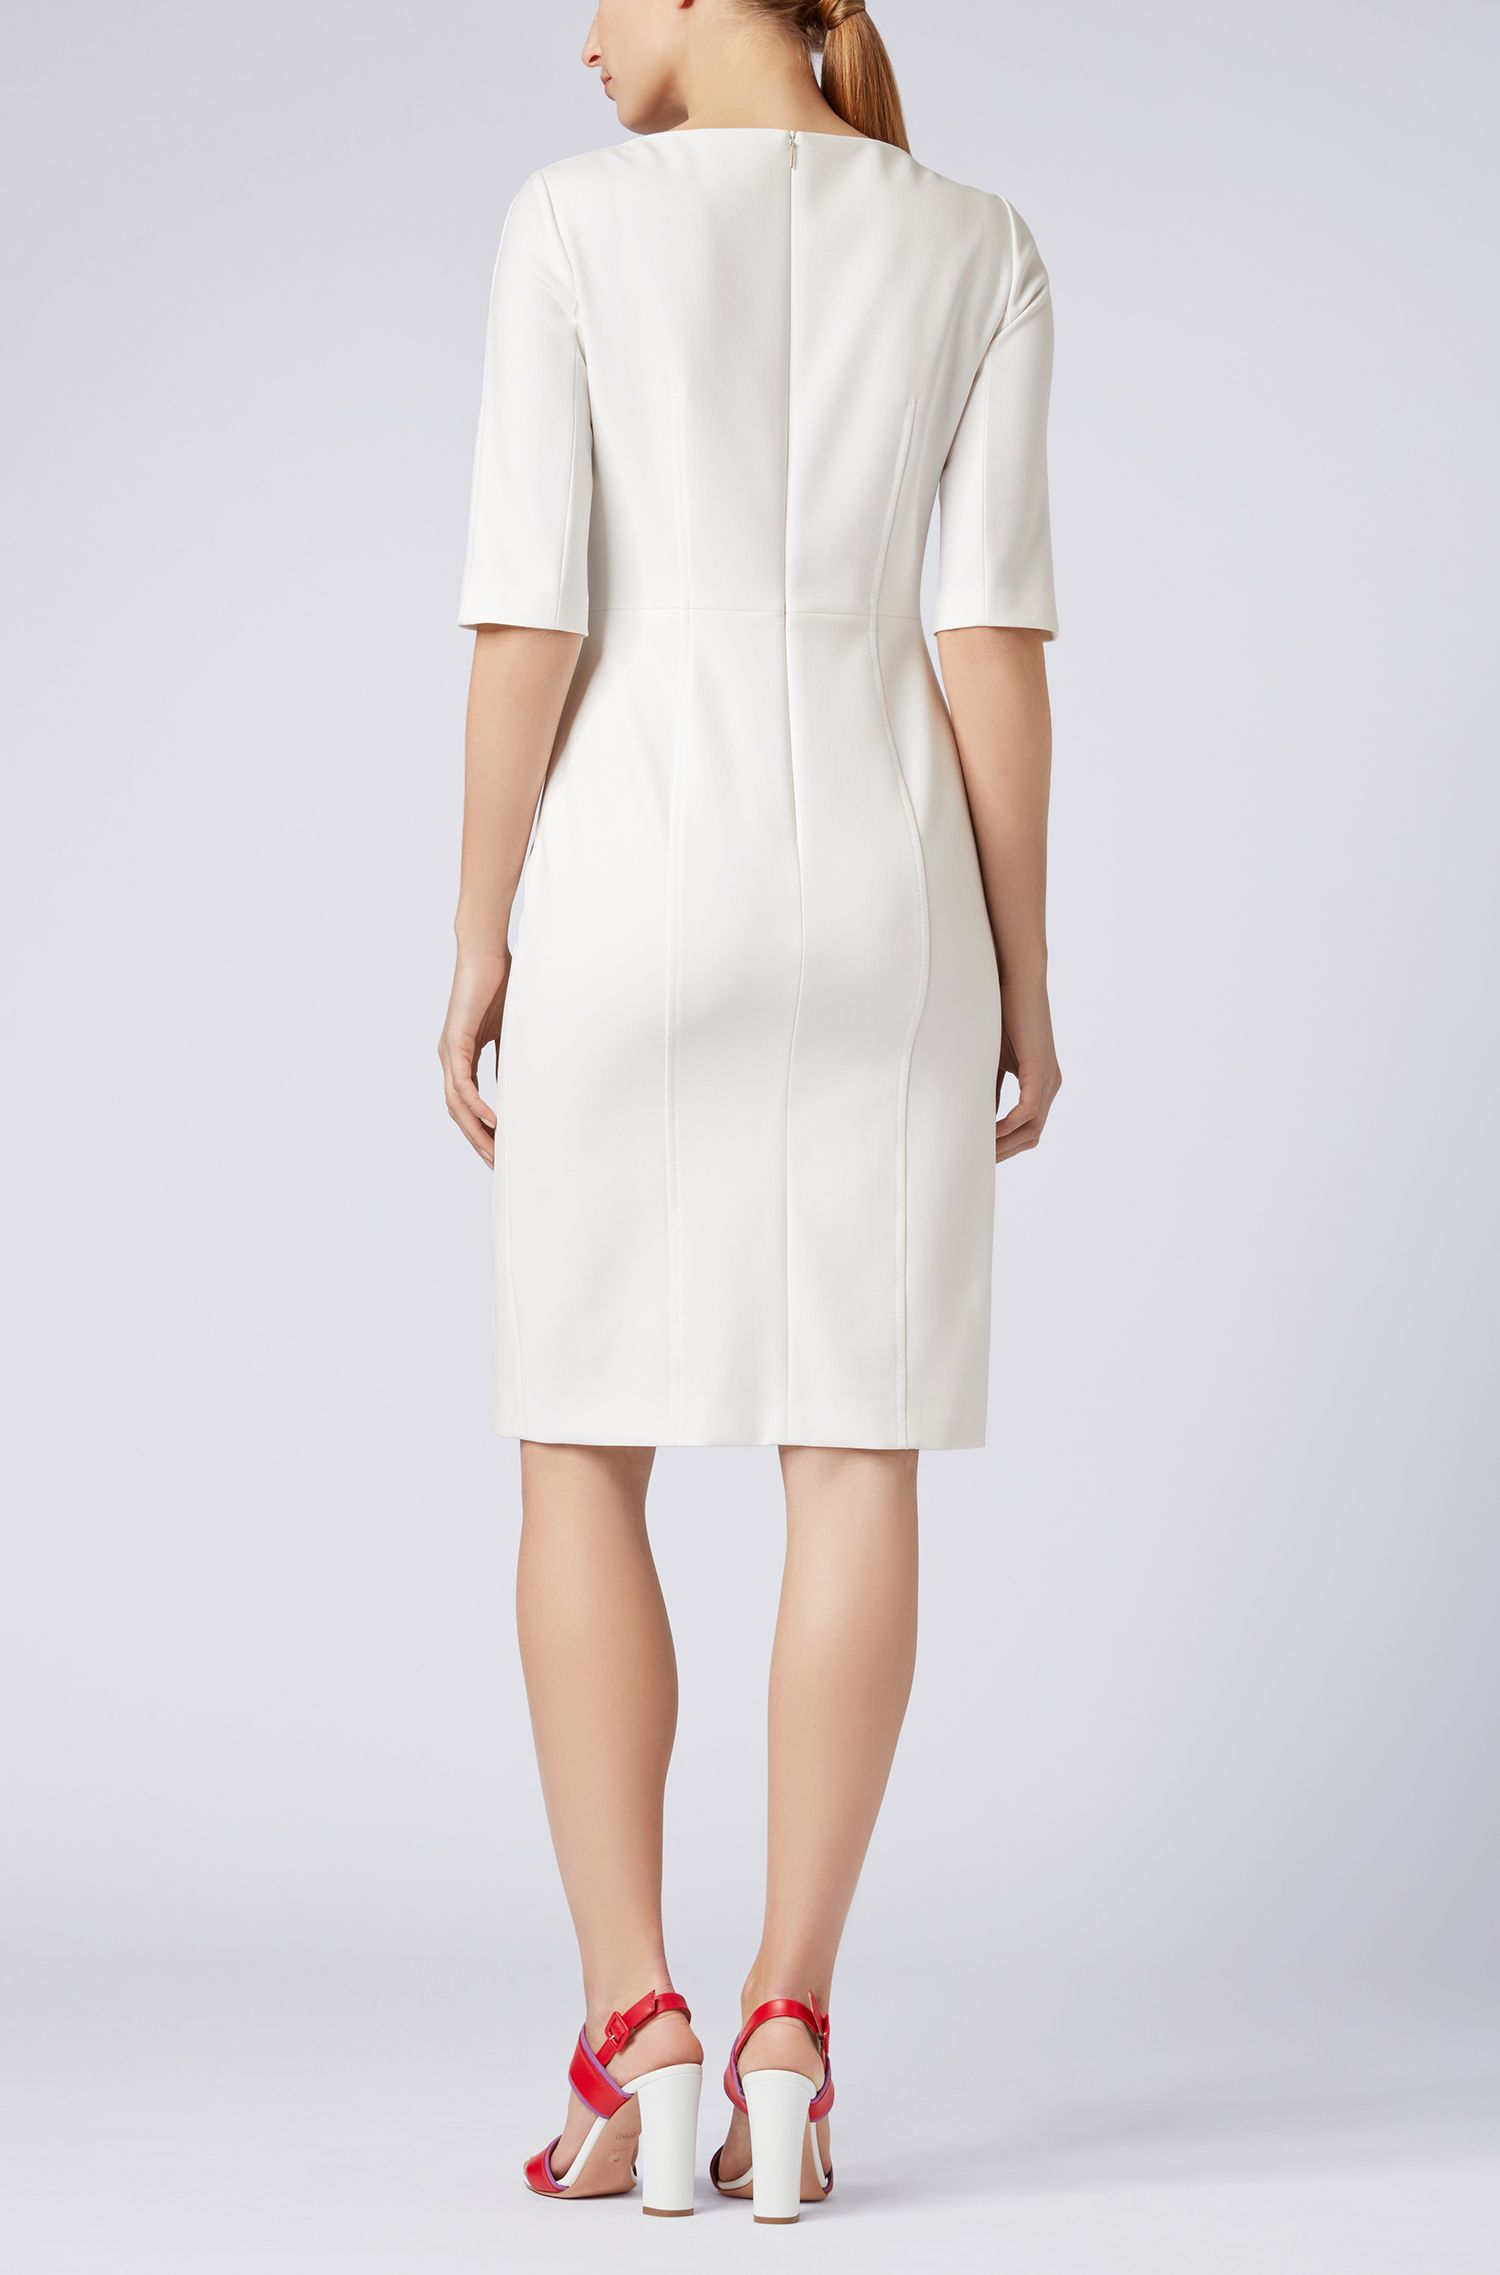 Hugo Boss - Three-quarter-sleeve dress with button detailing - 3